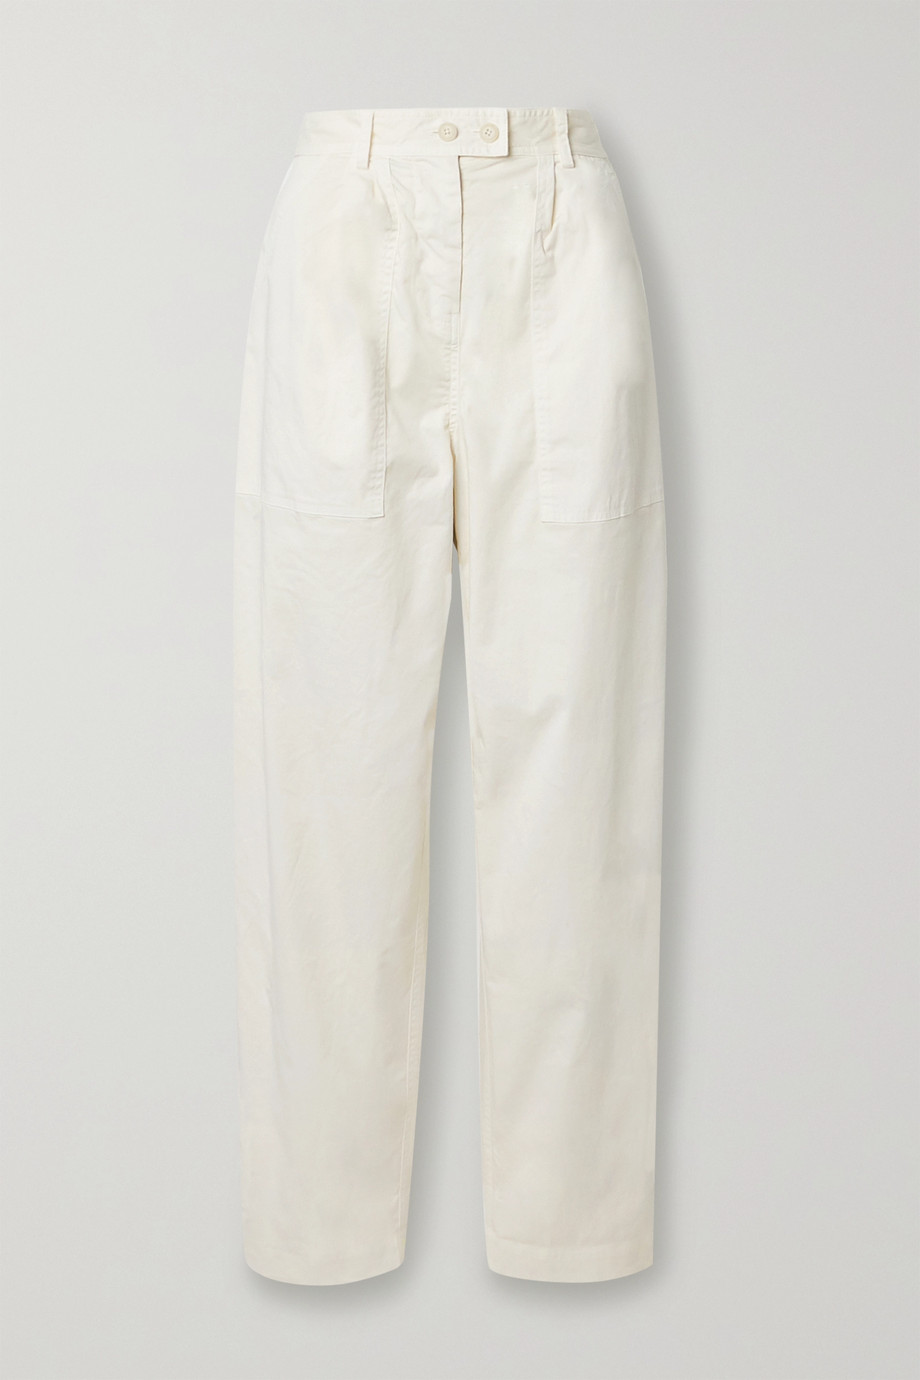 Nili Lotan Cyro stretch-cotton tapered pants